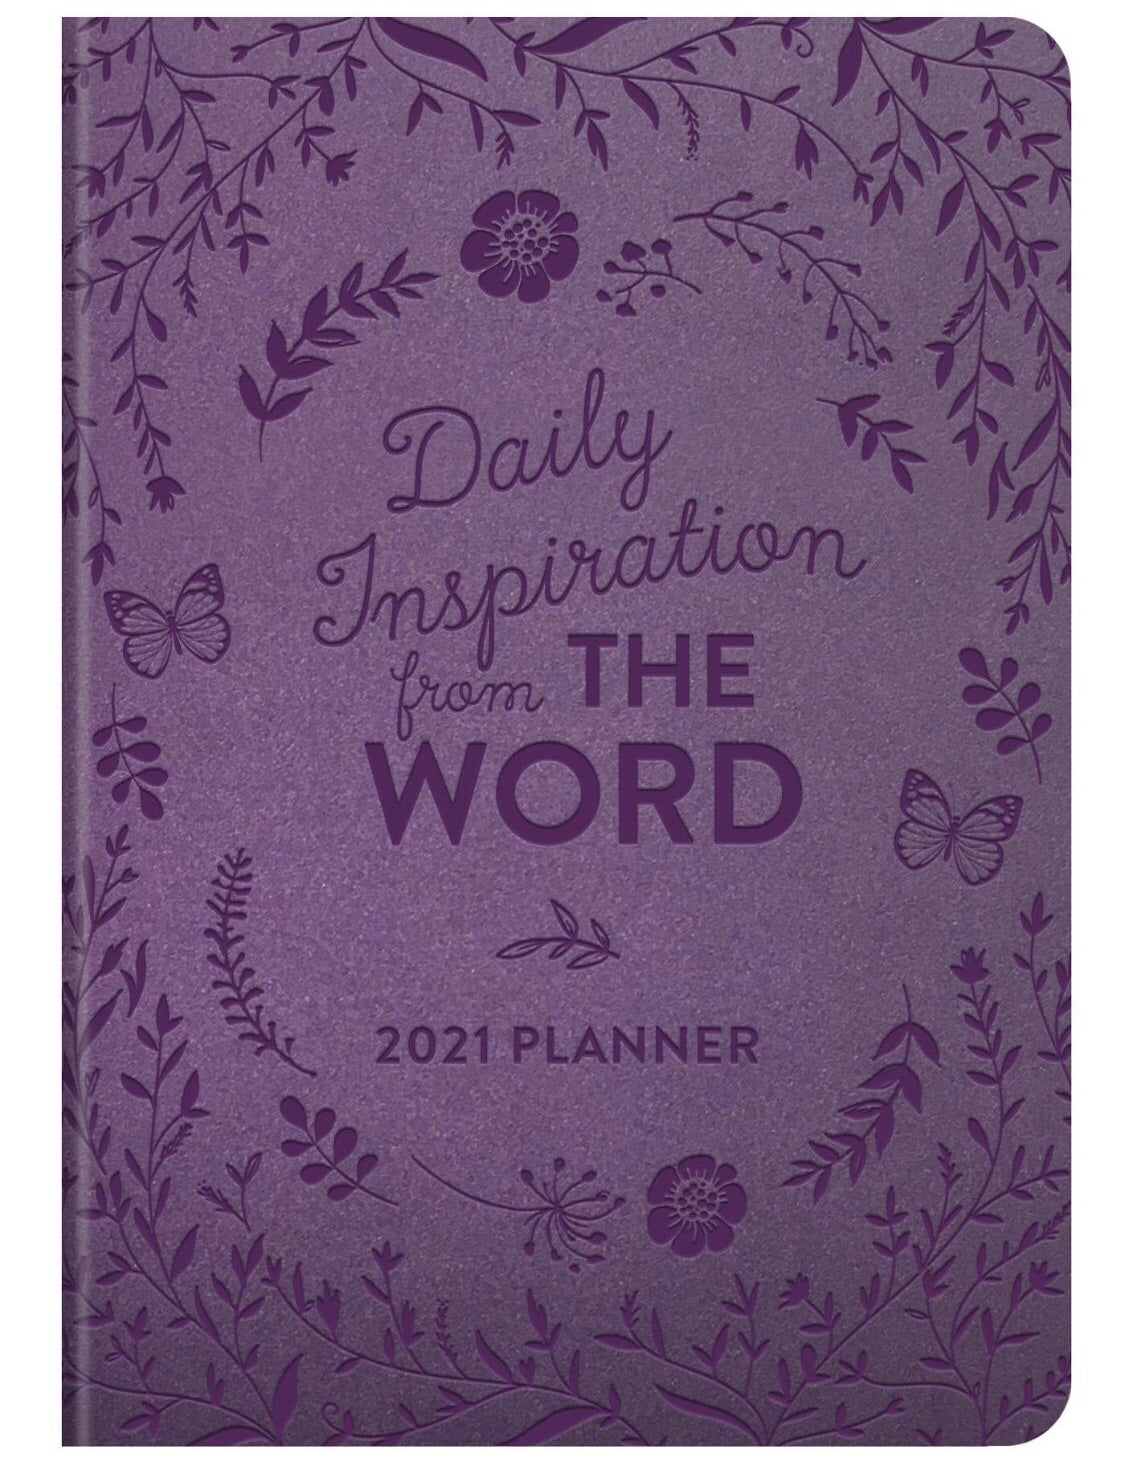 Daily Inspiration from The Word 2021 Planner